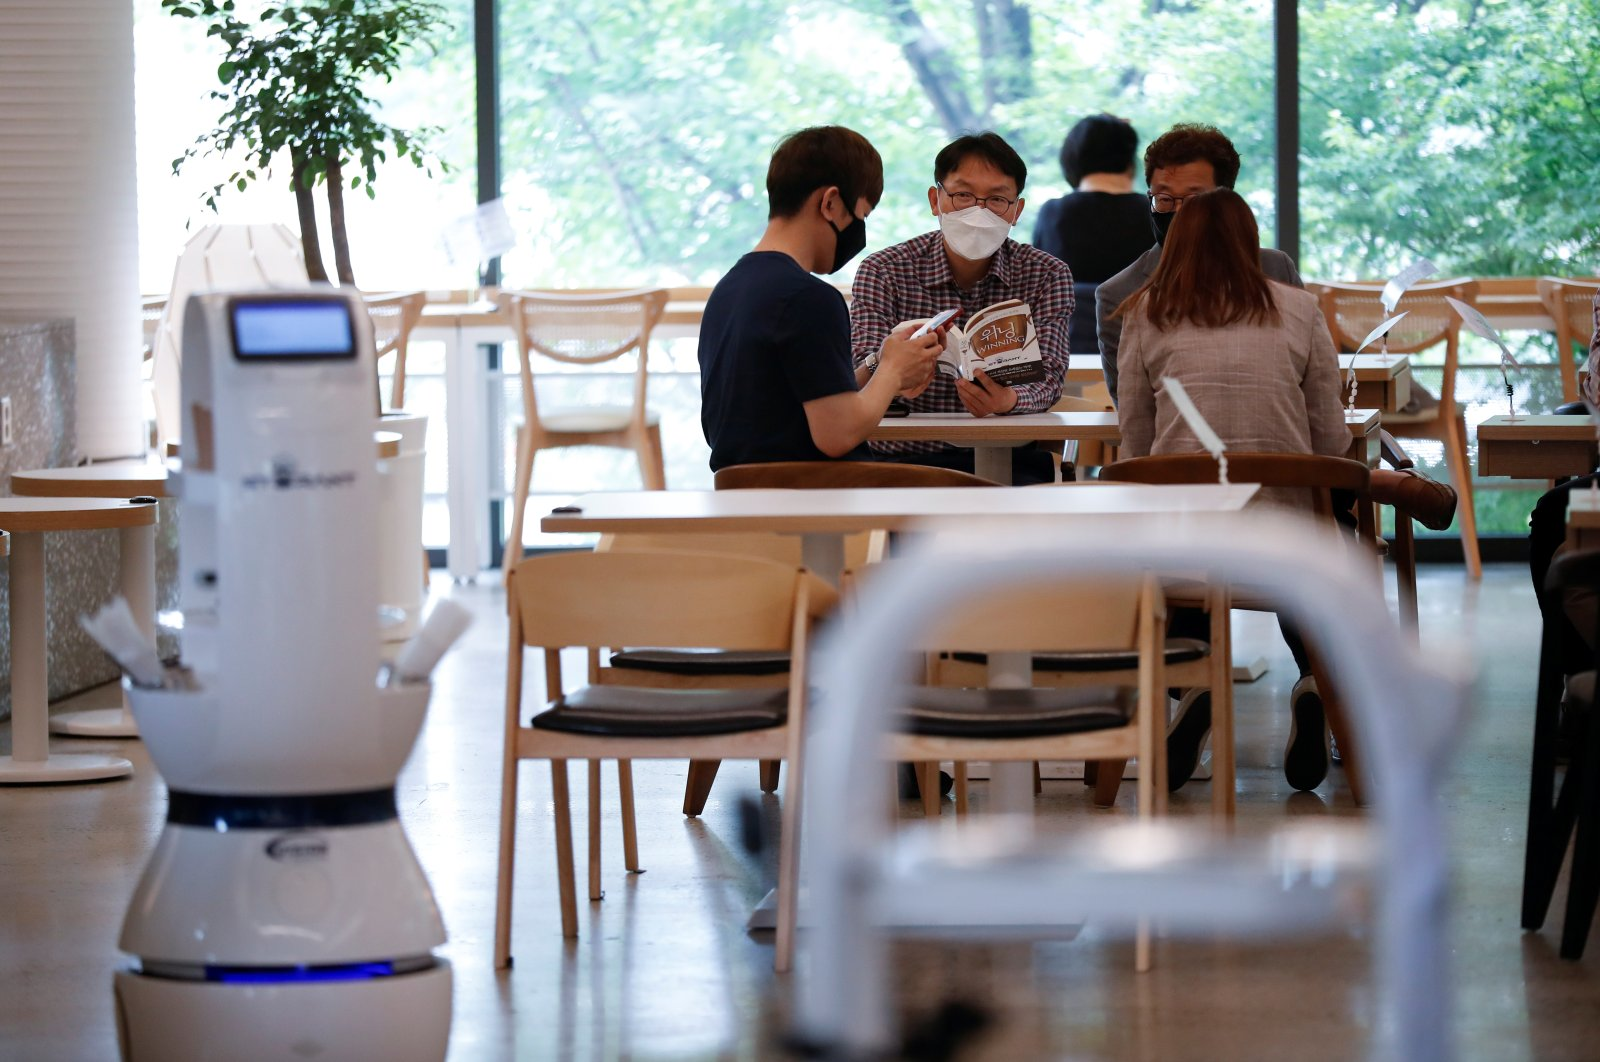 Customers wait at a cafe where a robot that takes orders, makes coffee and brings the drinks straight to customers is being used in Daejeon, South Korea, May 25, 2020. (Reuters Photo)